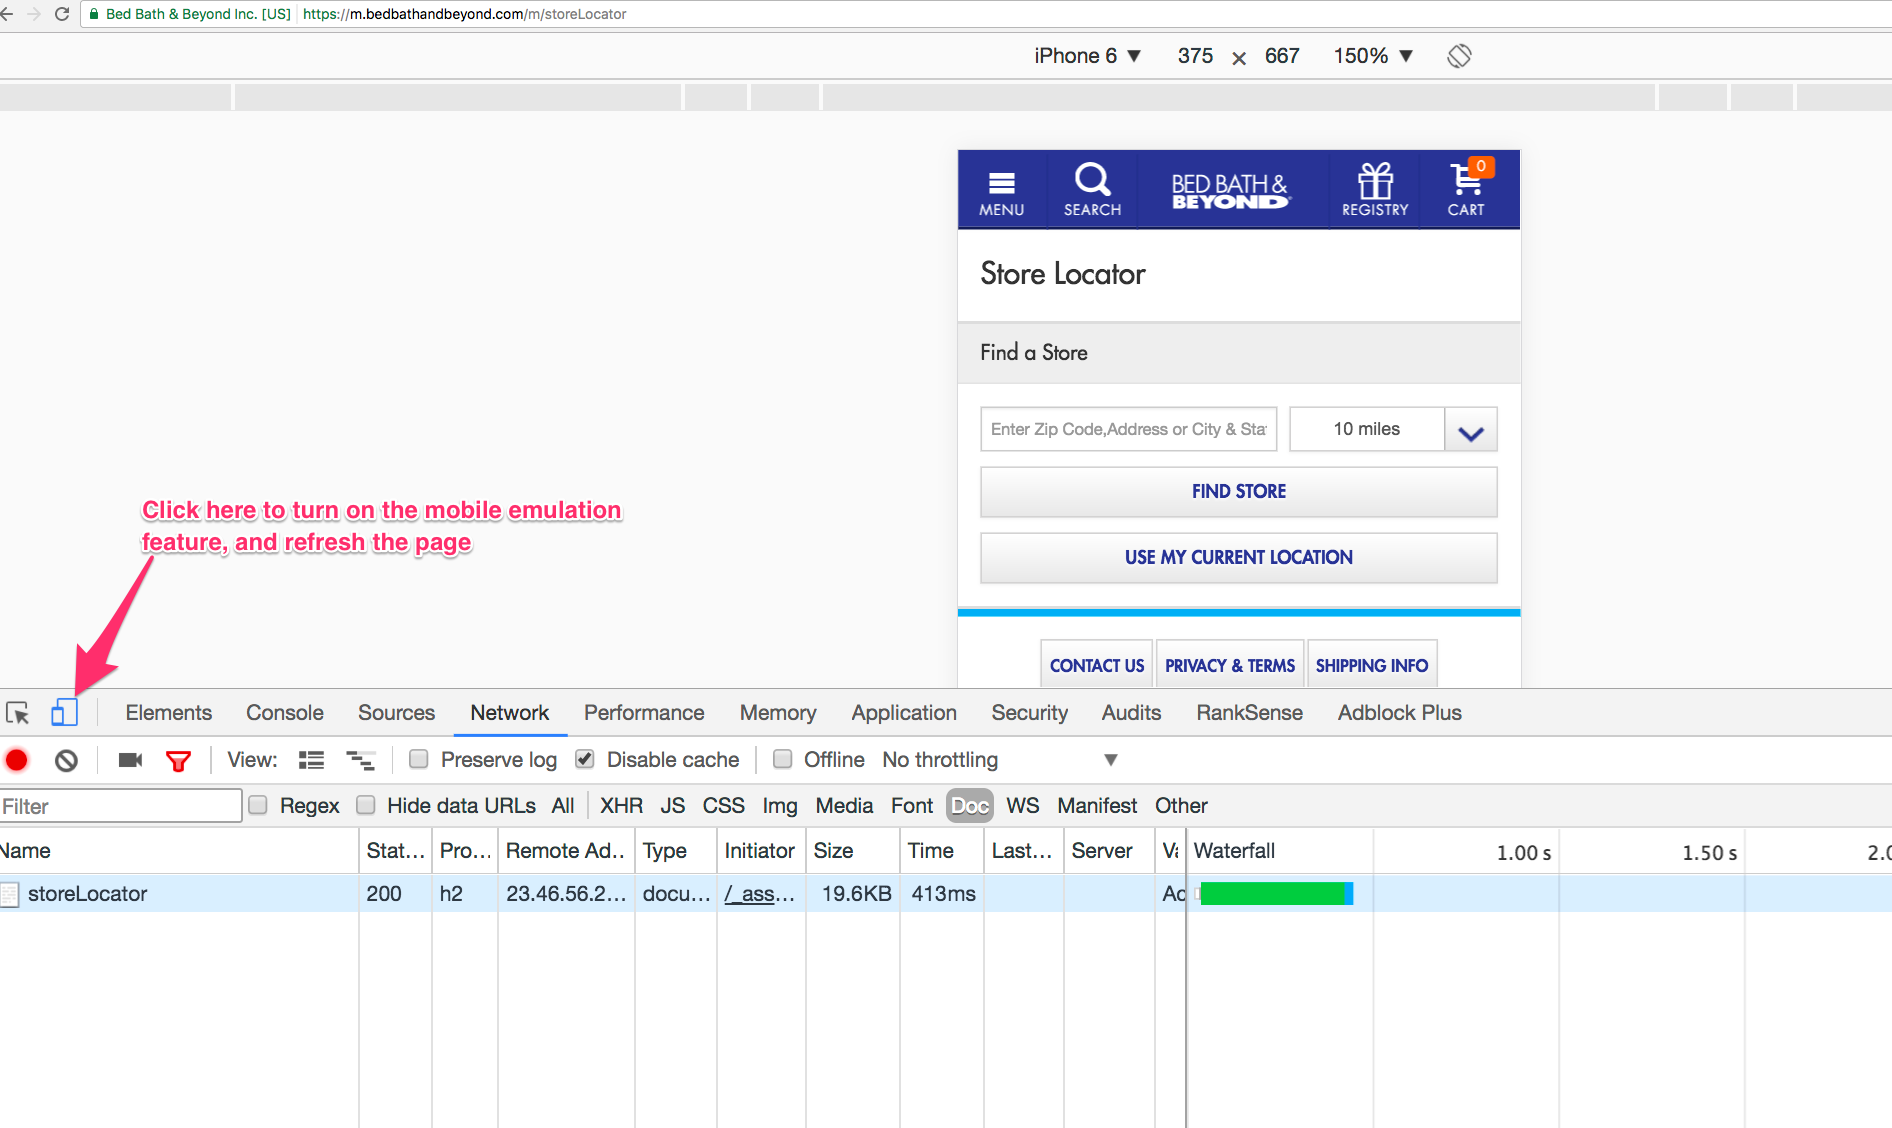 Using Chrome's Developer tools, we can see a mobile user's point of view.